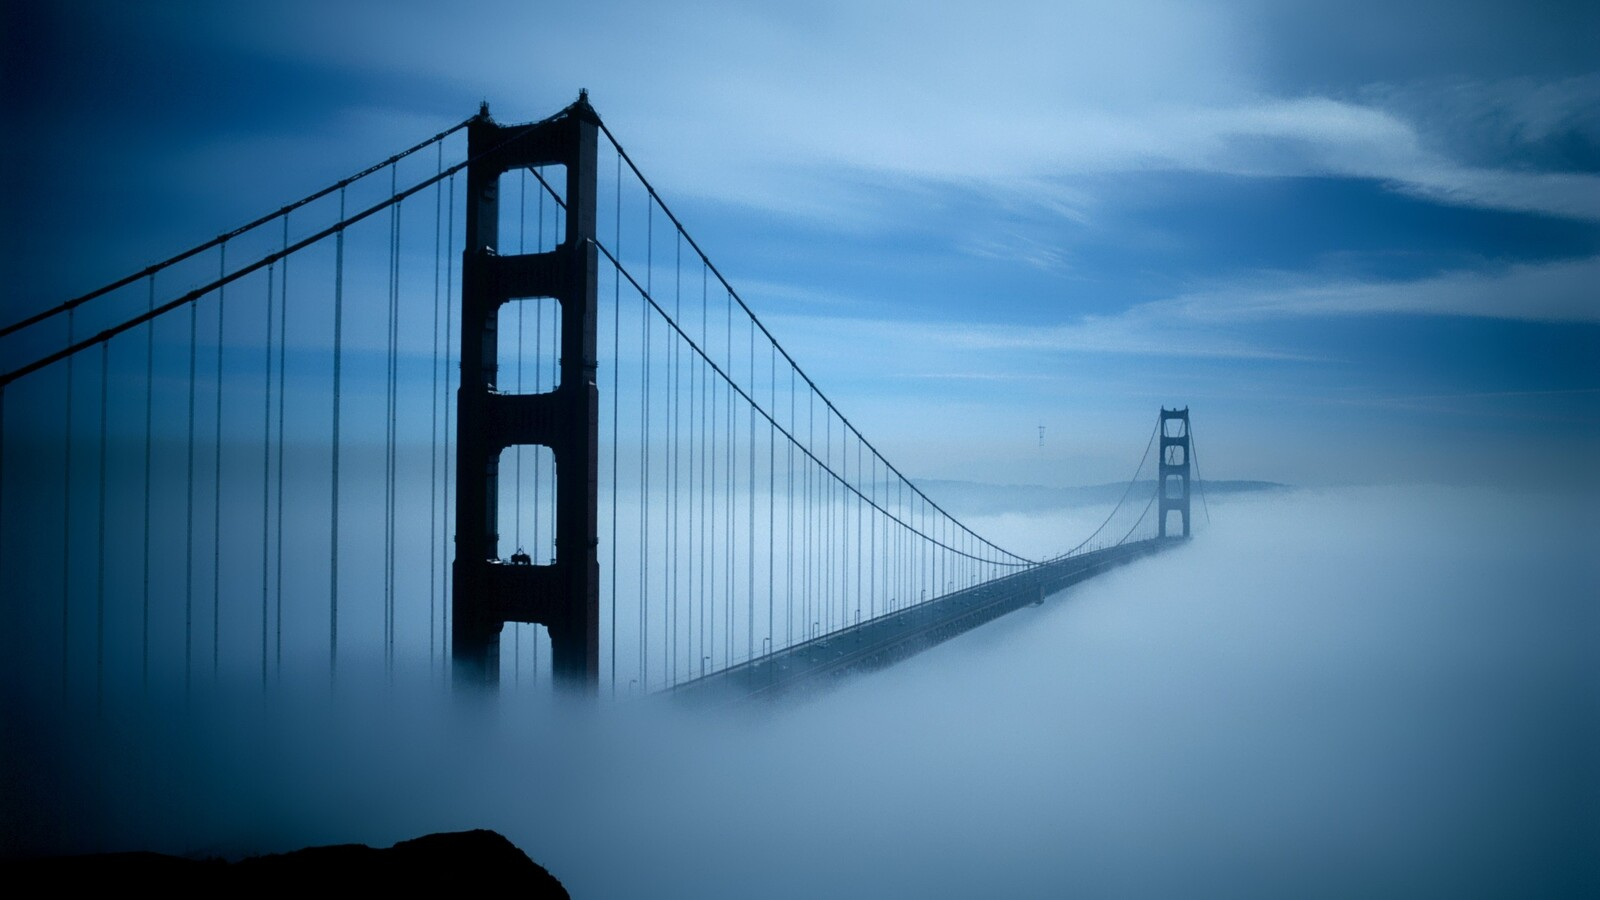 1600x900 Golden Gate Bridge San Francisco 1600x900 Resolution Hd 4k Wallpapers Images Backgrounds Photos And Pictures